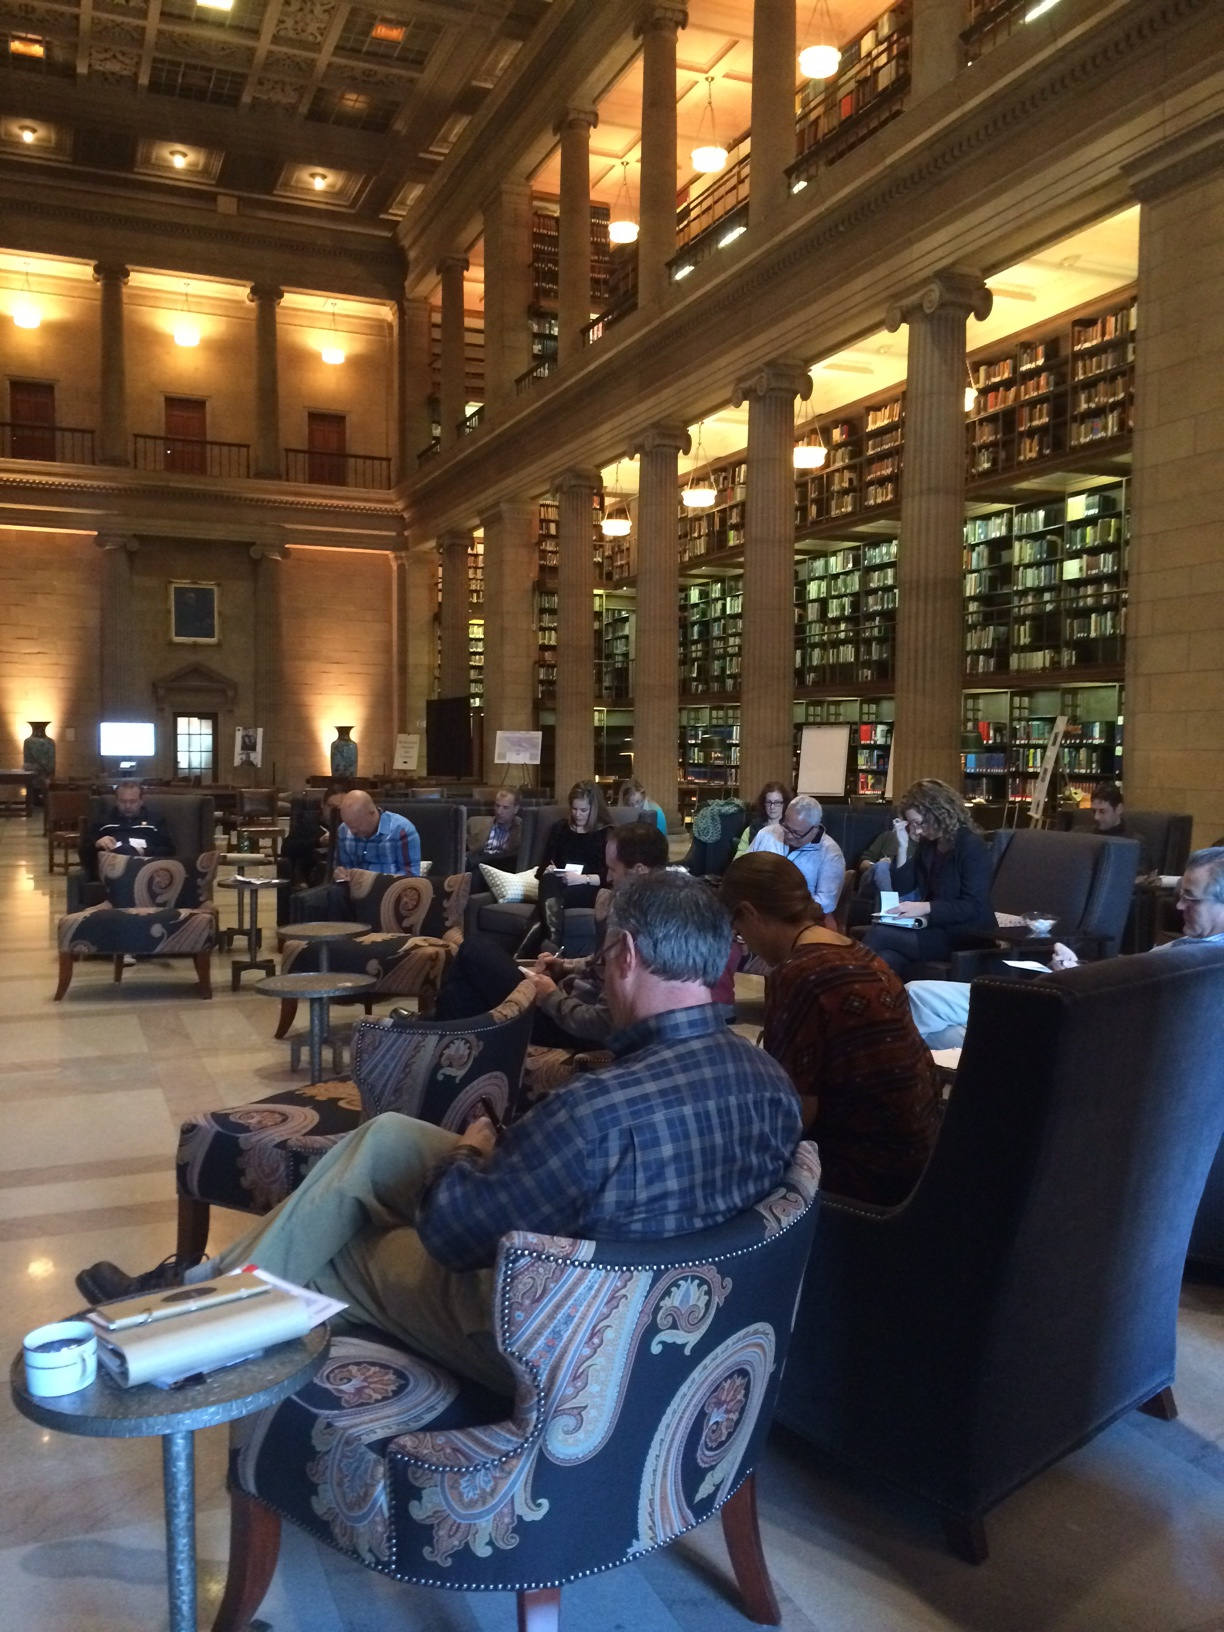 Here's Cohort D, trying to think up things that'll scare me. Side note: How stunning is the James J. Hill Library?